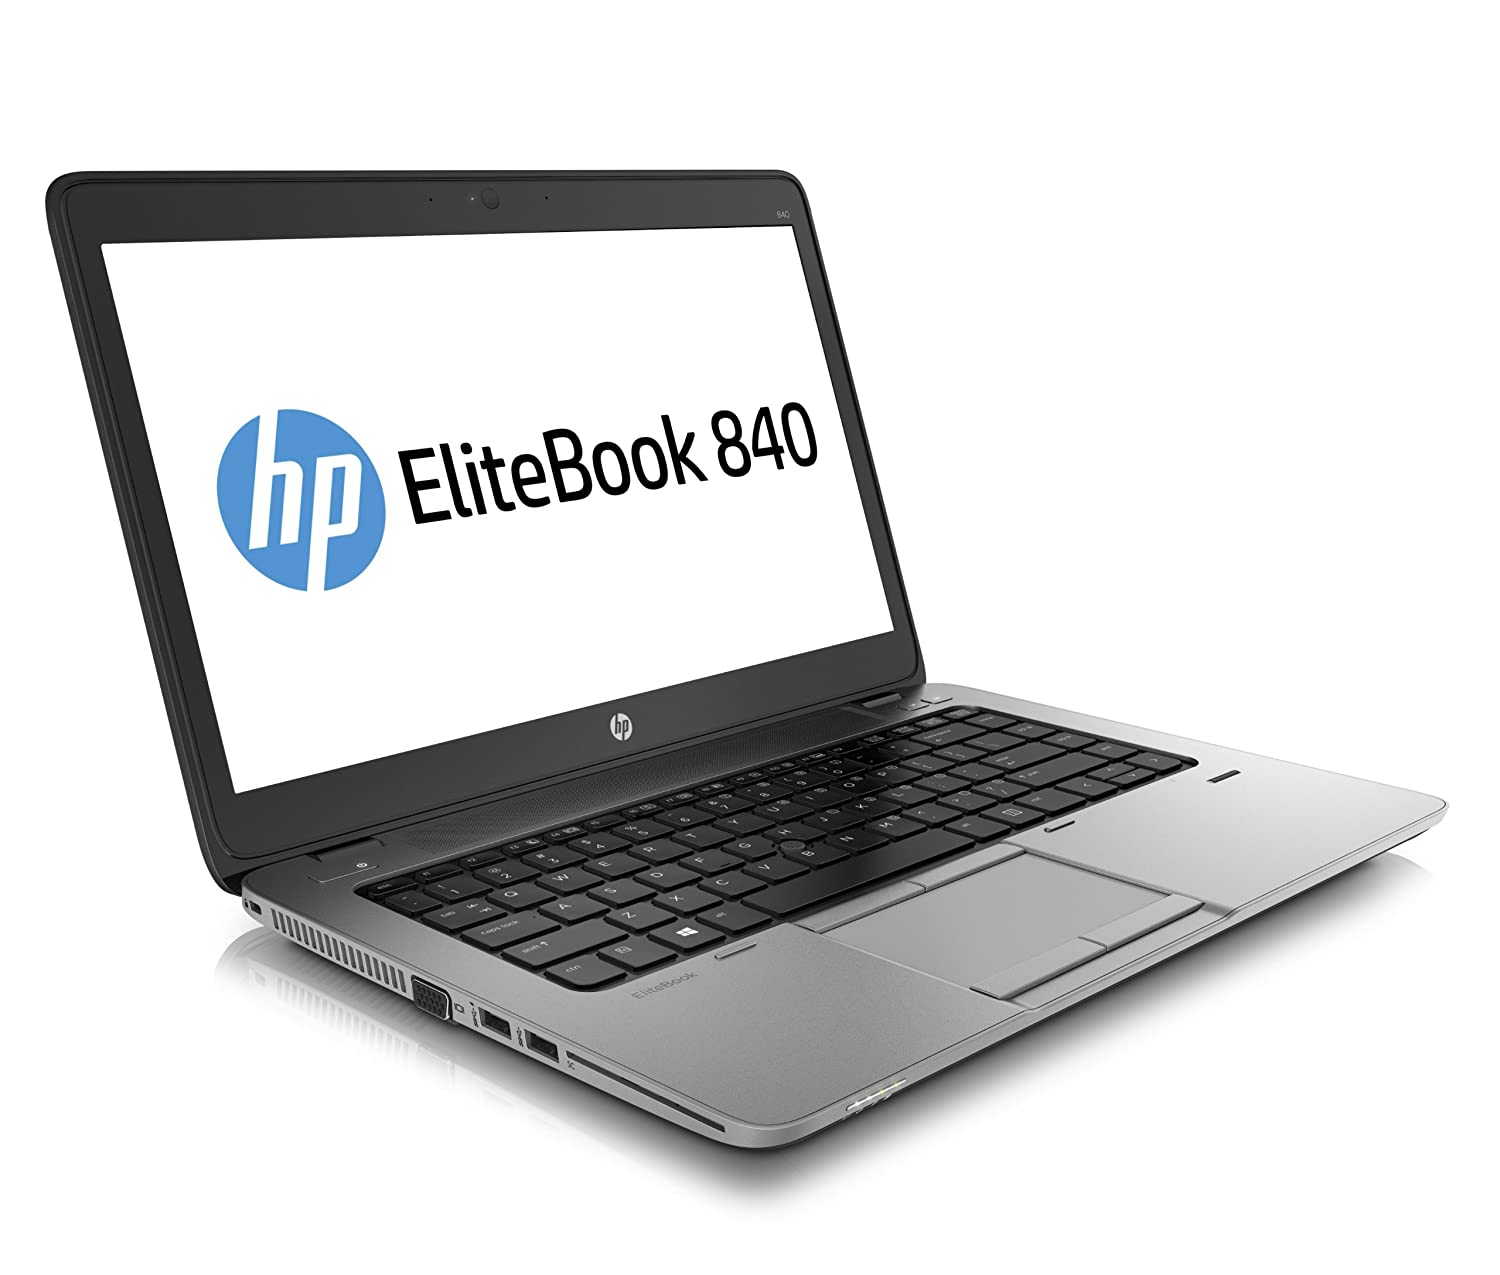 HP EliteBook 840 G1 review